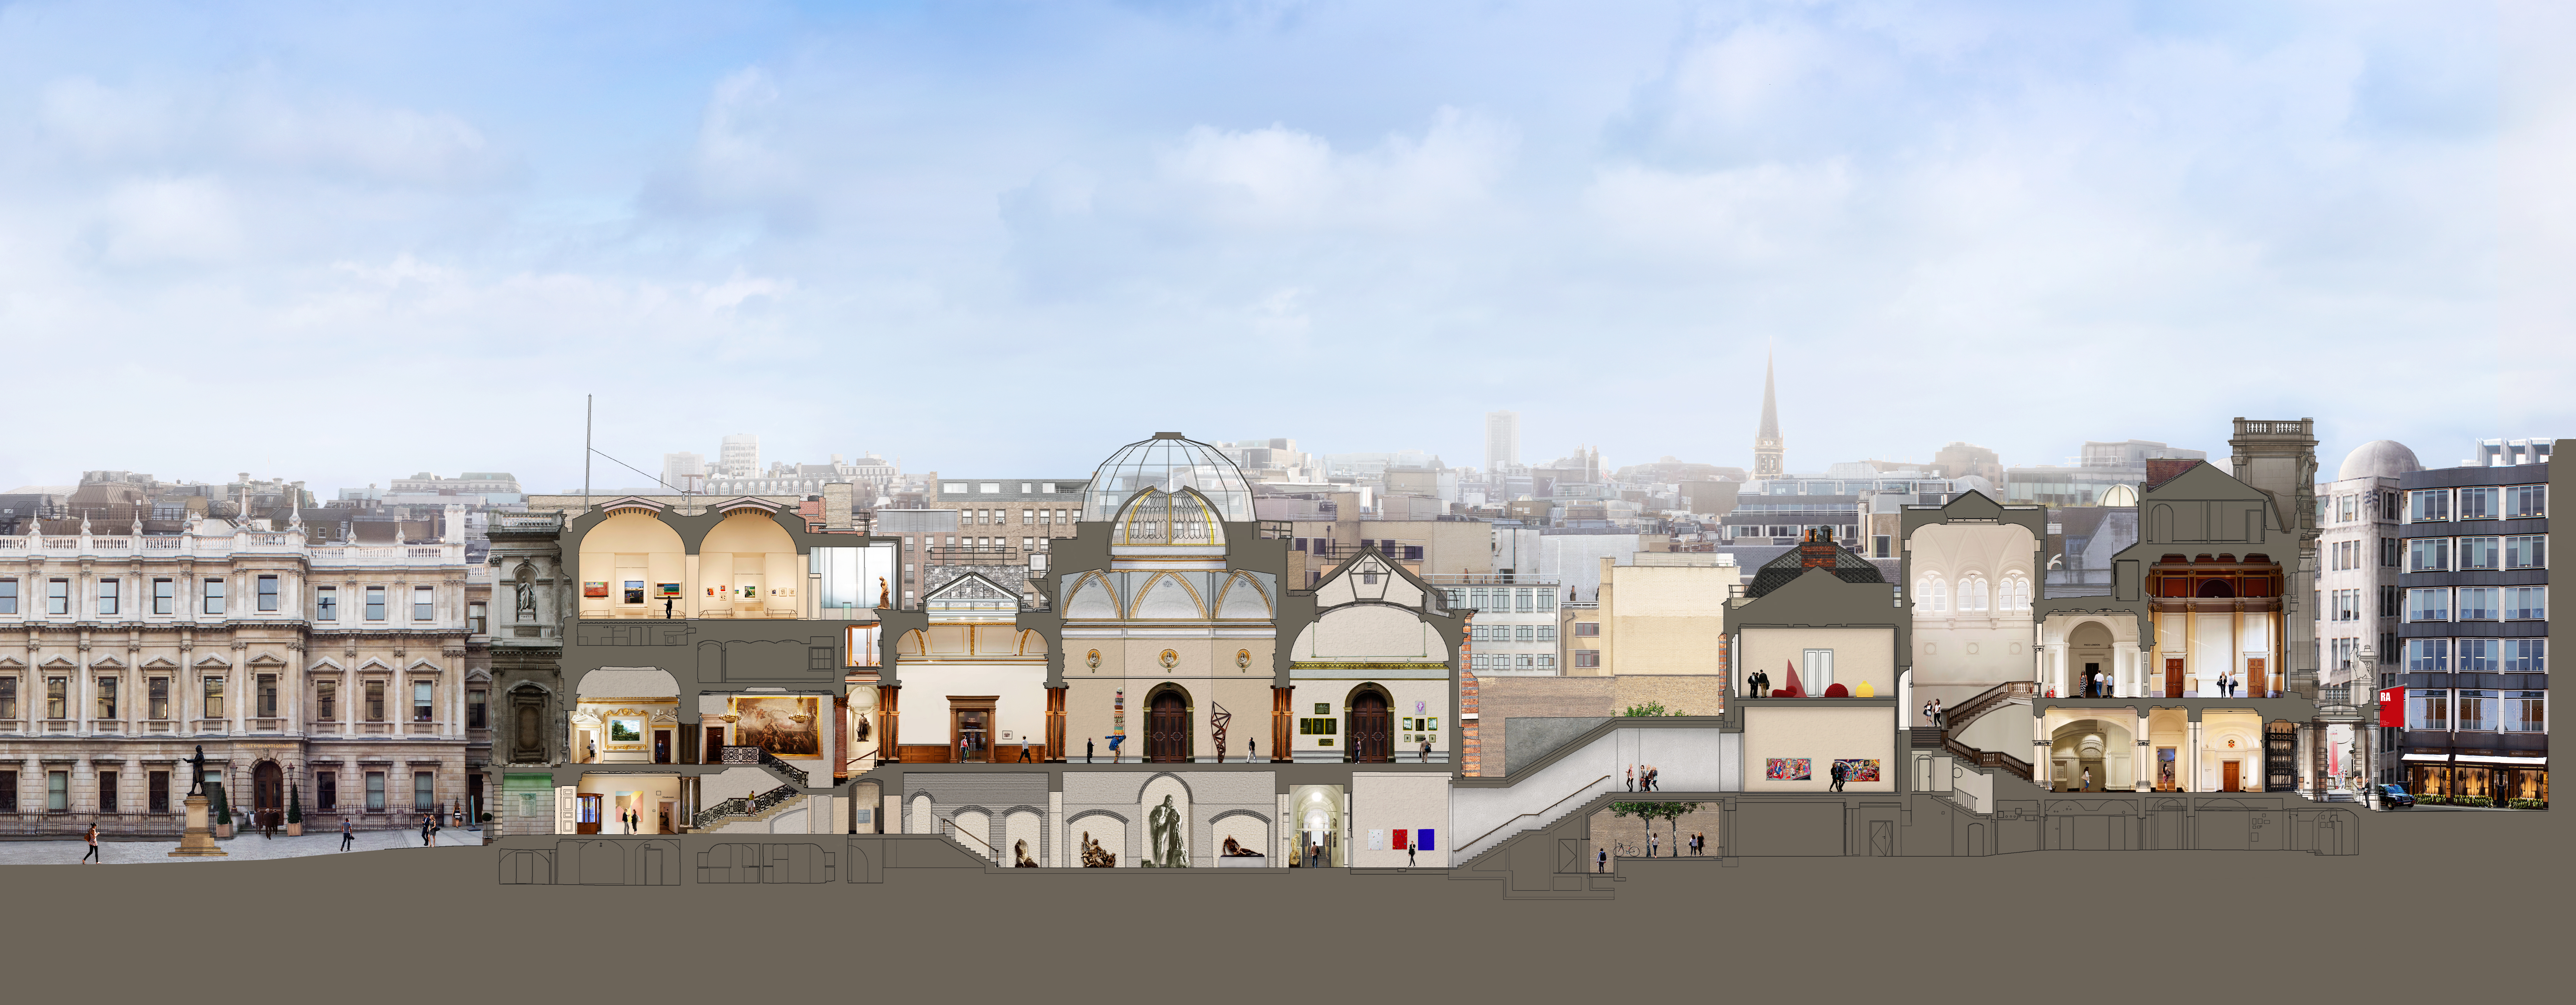 New Royal Academy - Cross-section of the Royal Academy's site in 2018